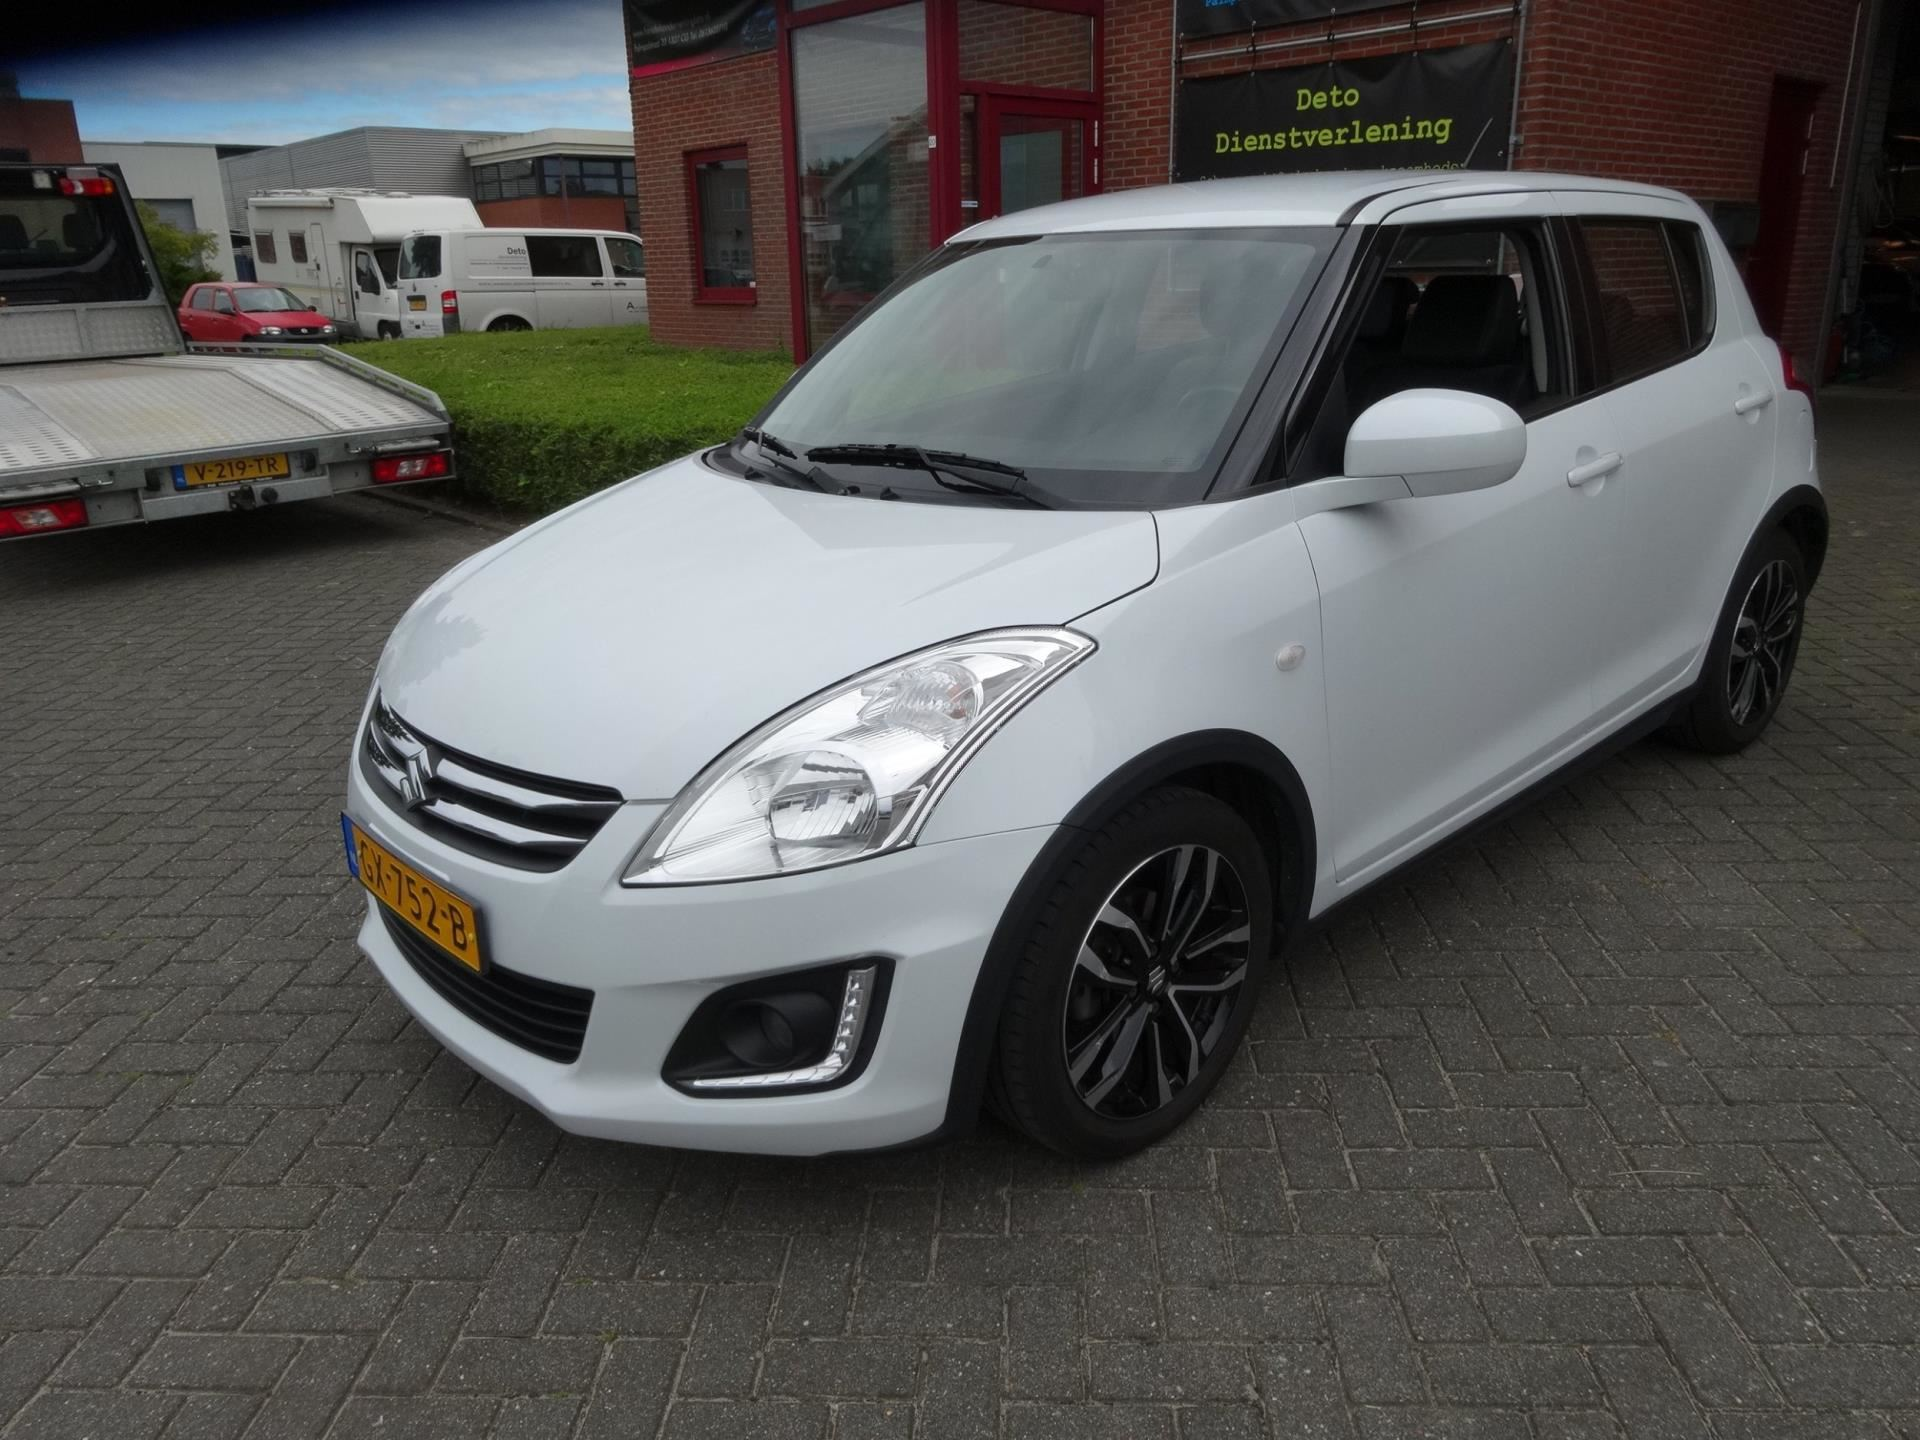 Suzuki Swift occasion - Handelsonderneming Deto